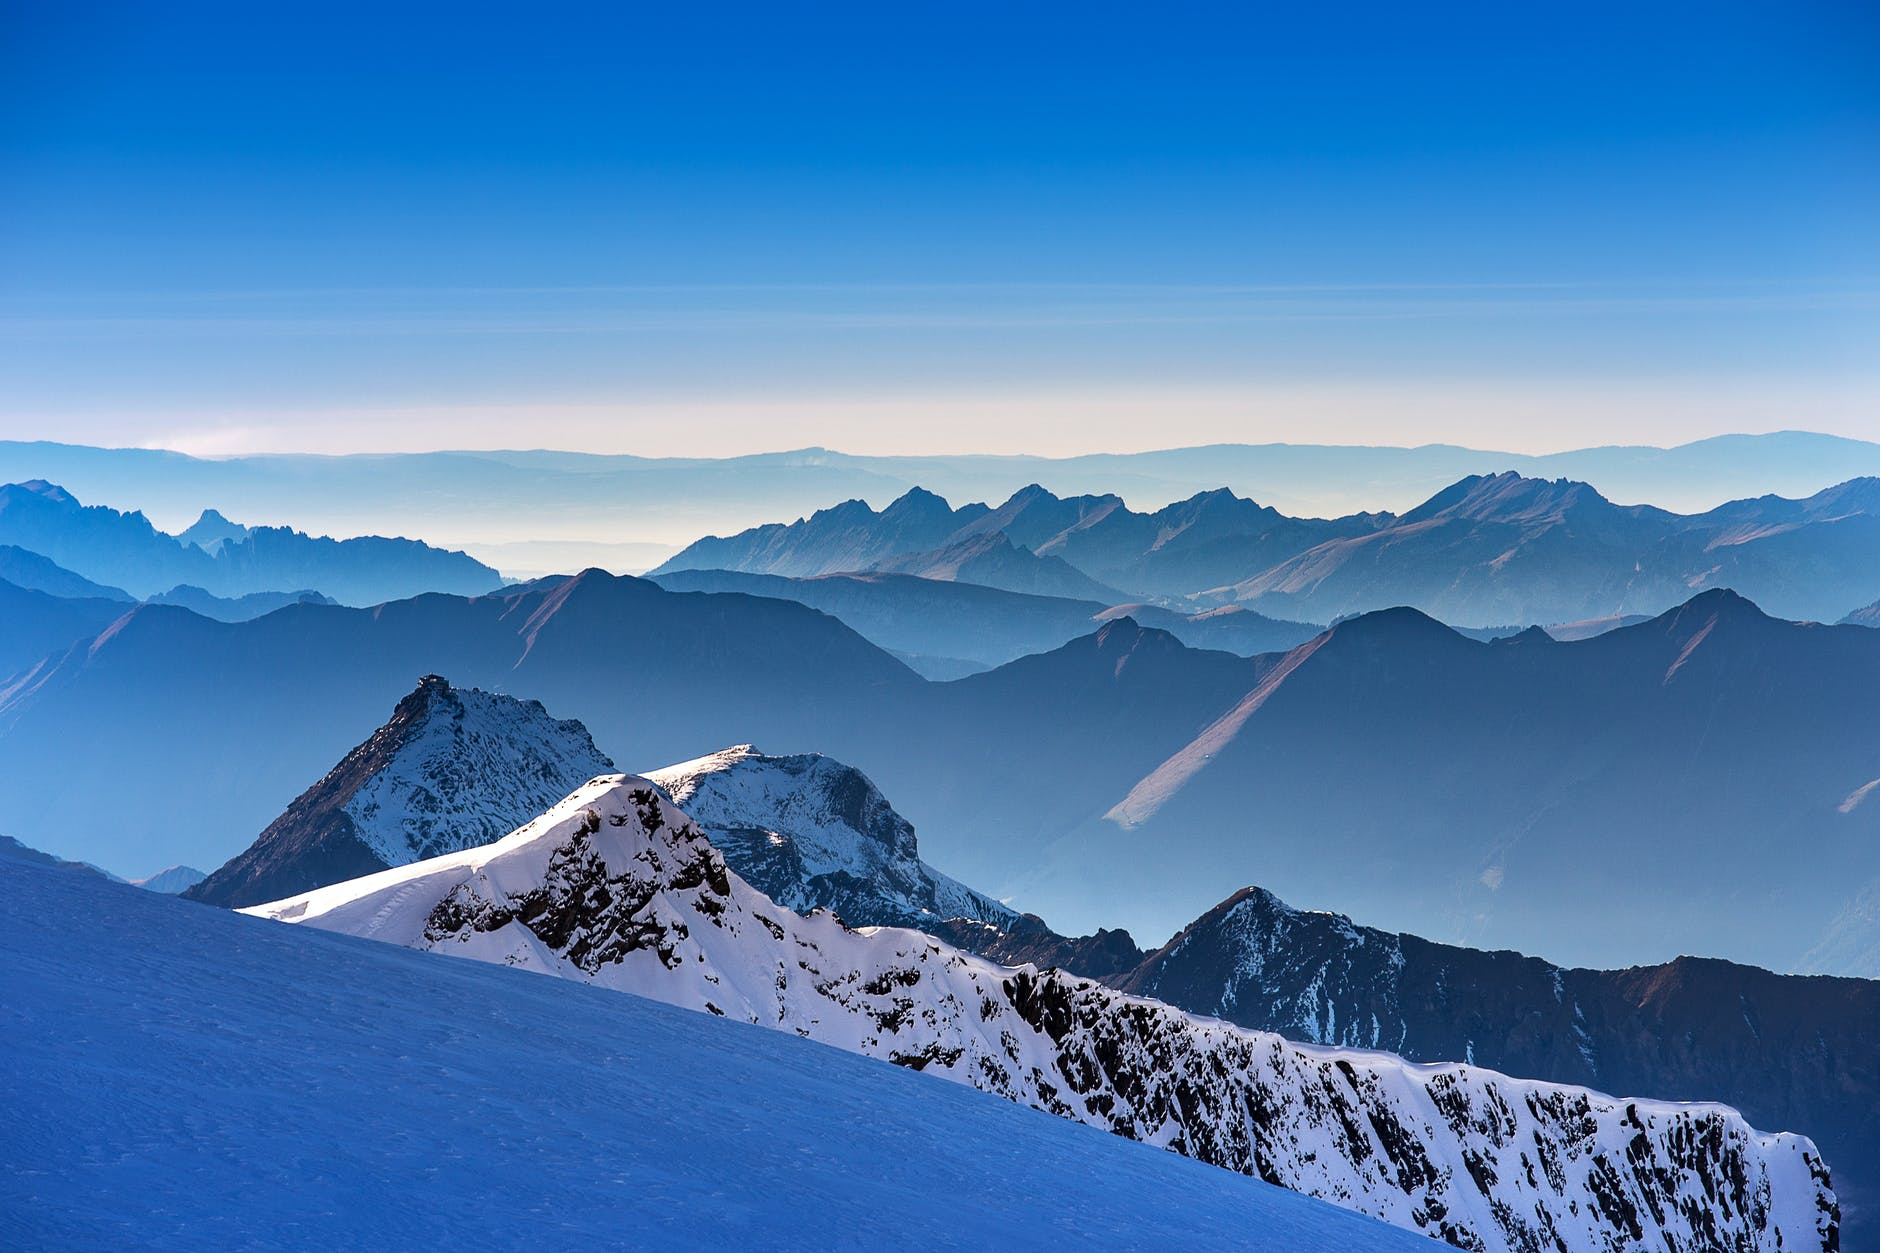 landscape photo of snow covered mountains